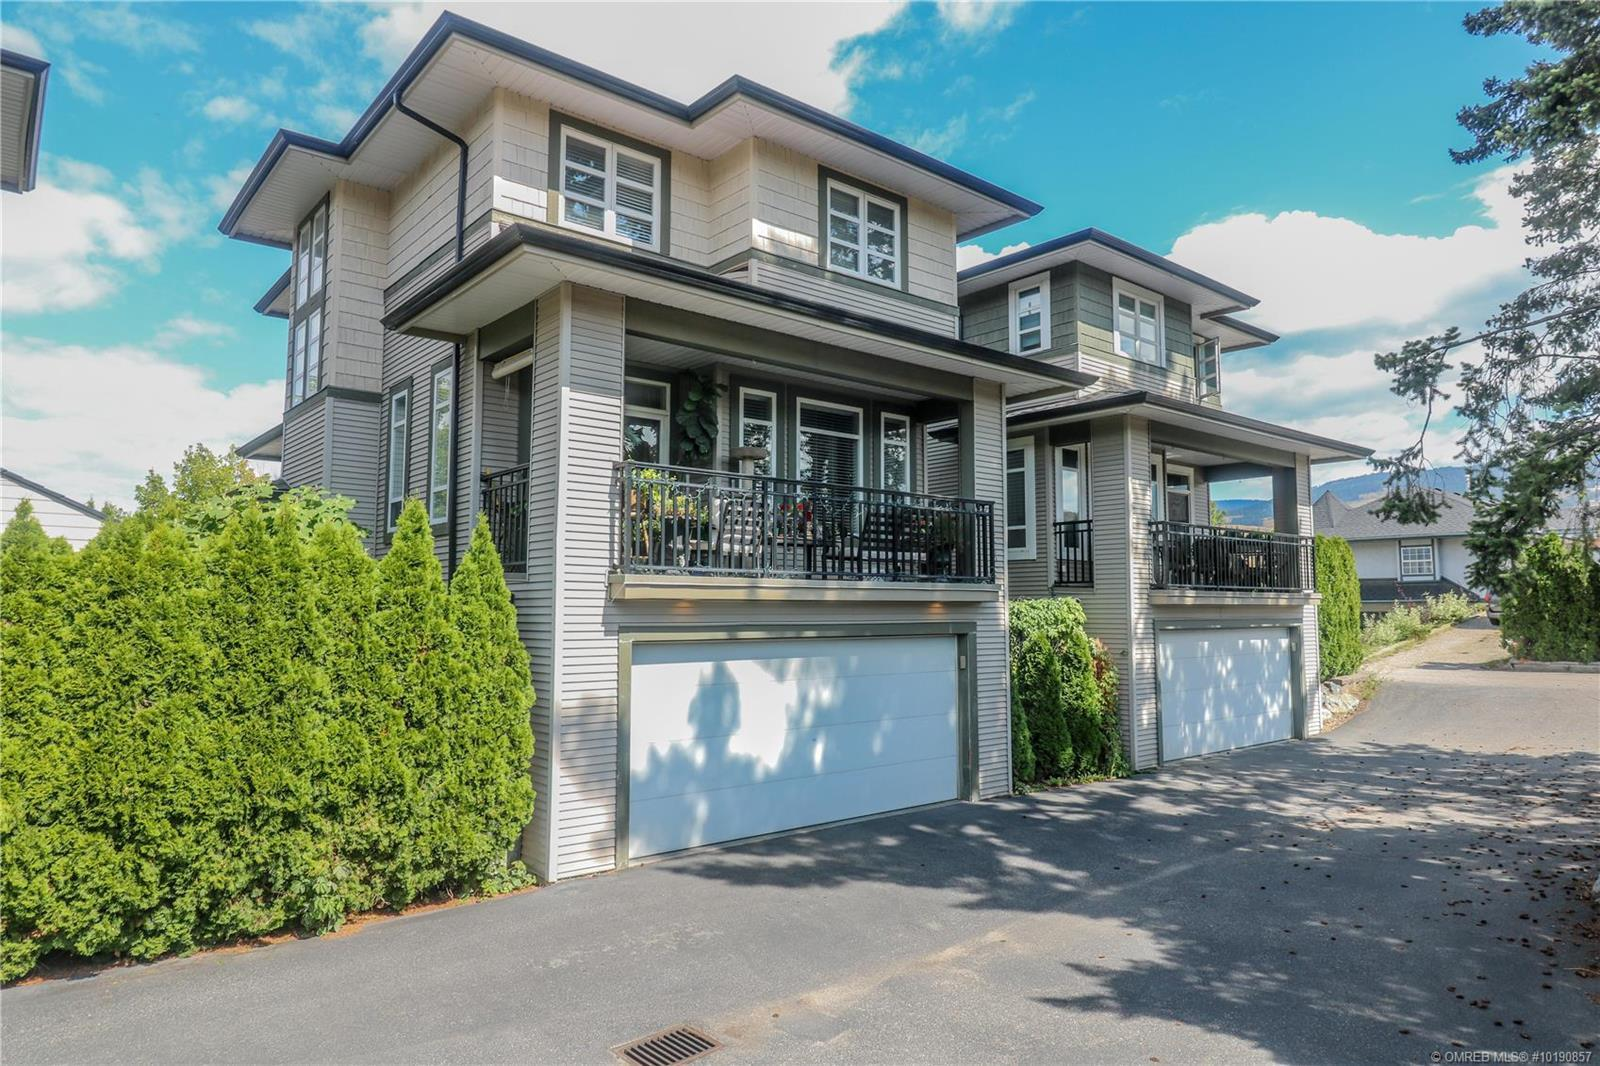 Removed: 113 Mccurdy Road East, Kelowna, BC - Removed on 2019-10-02 22:51:02